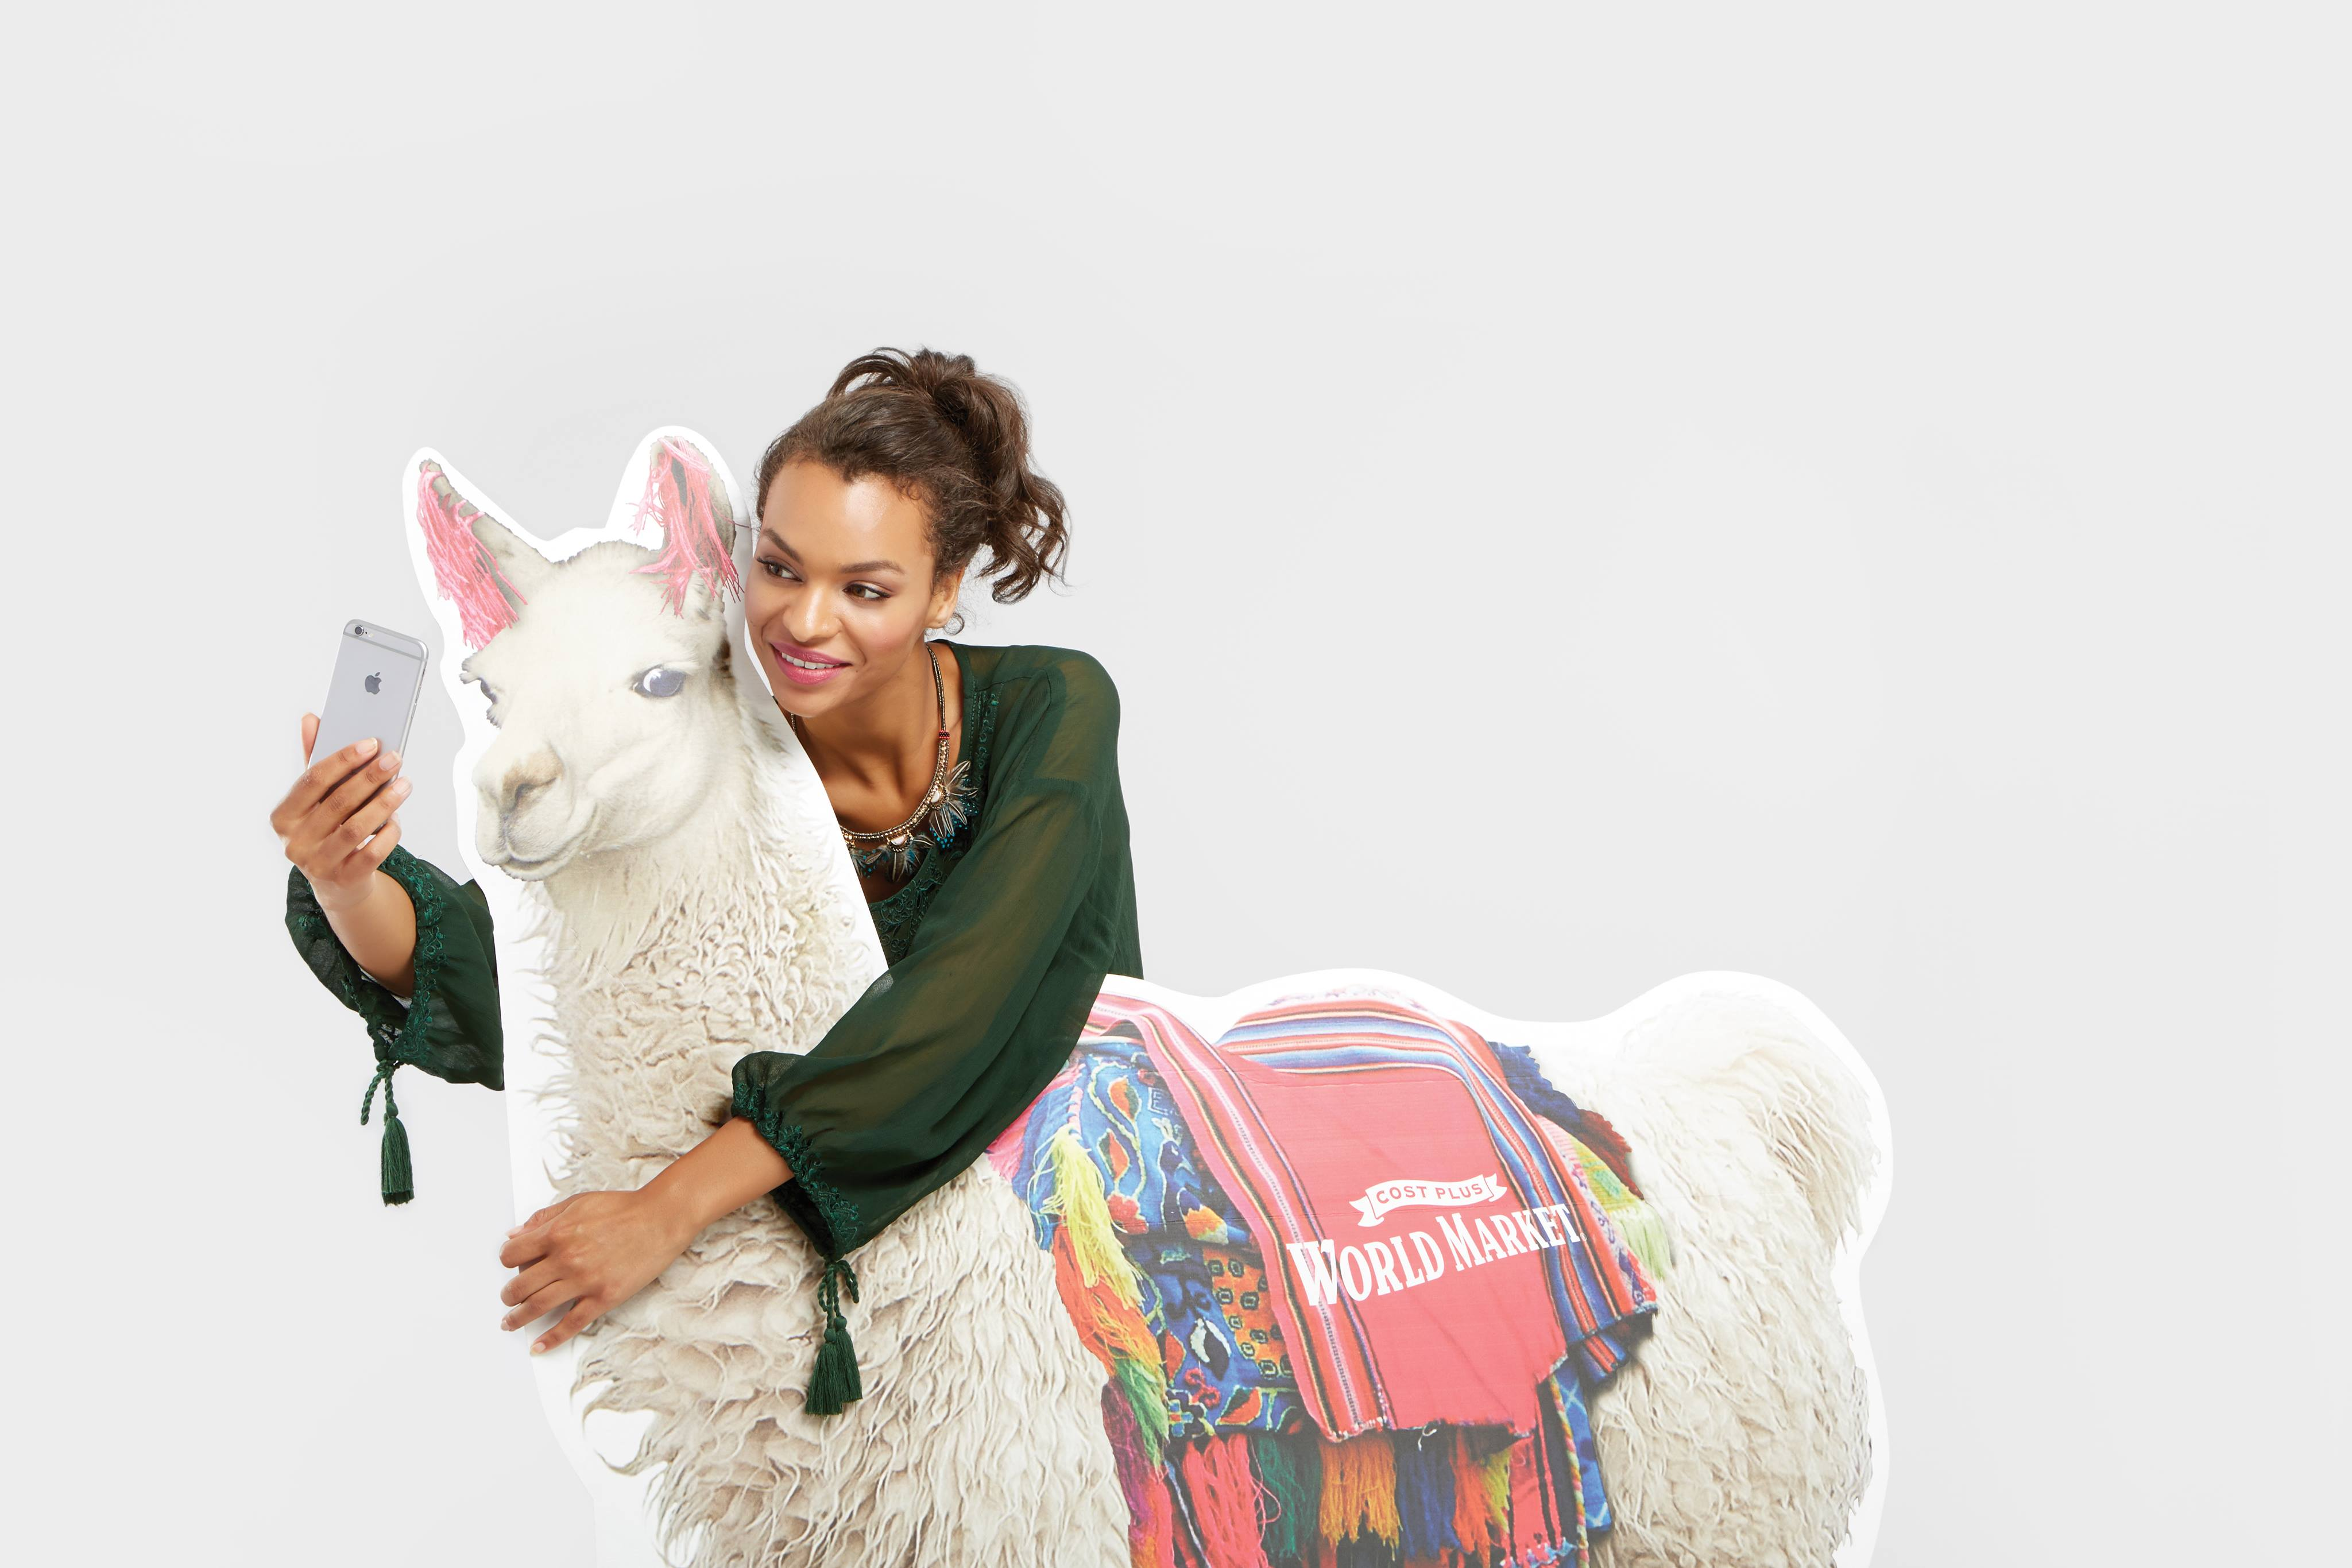 Hot Cocoa and National Llama Day - www.refashionablylate.com